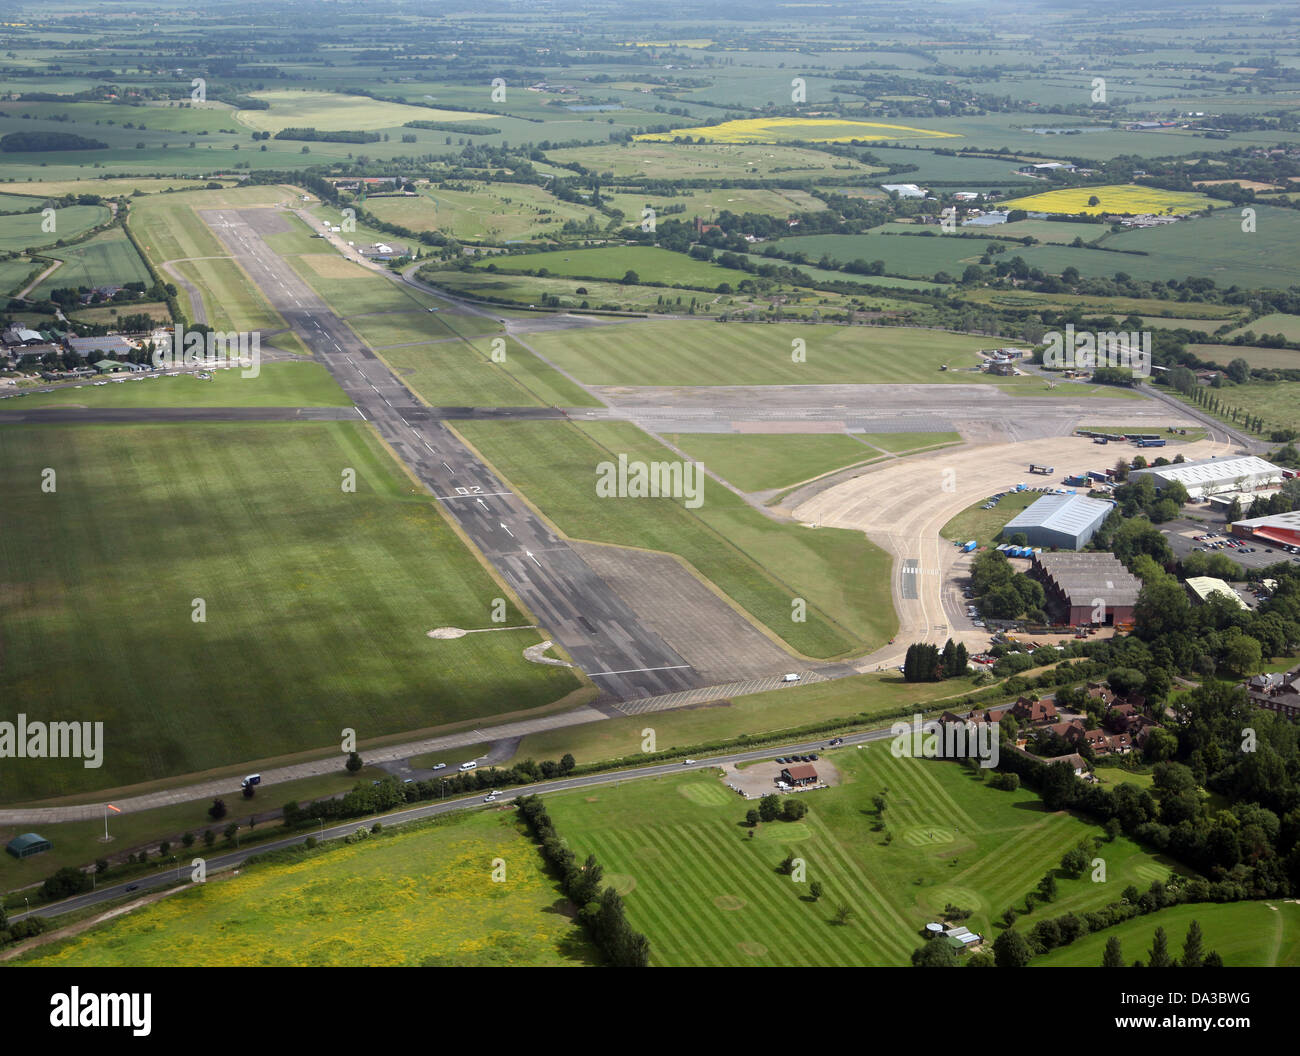 aerial view of North Weald Airfield in Essex - Stock Image